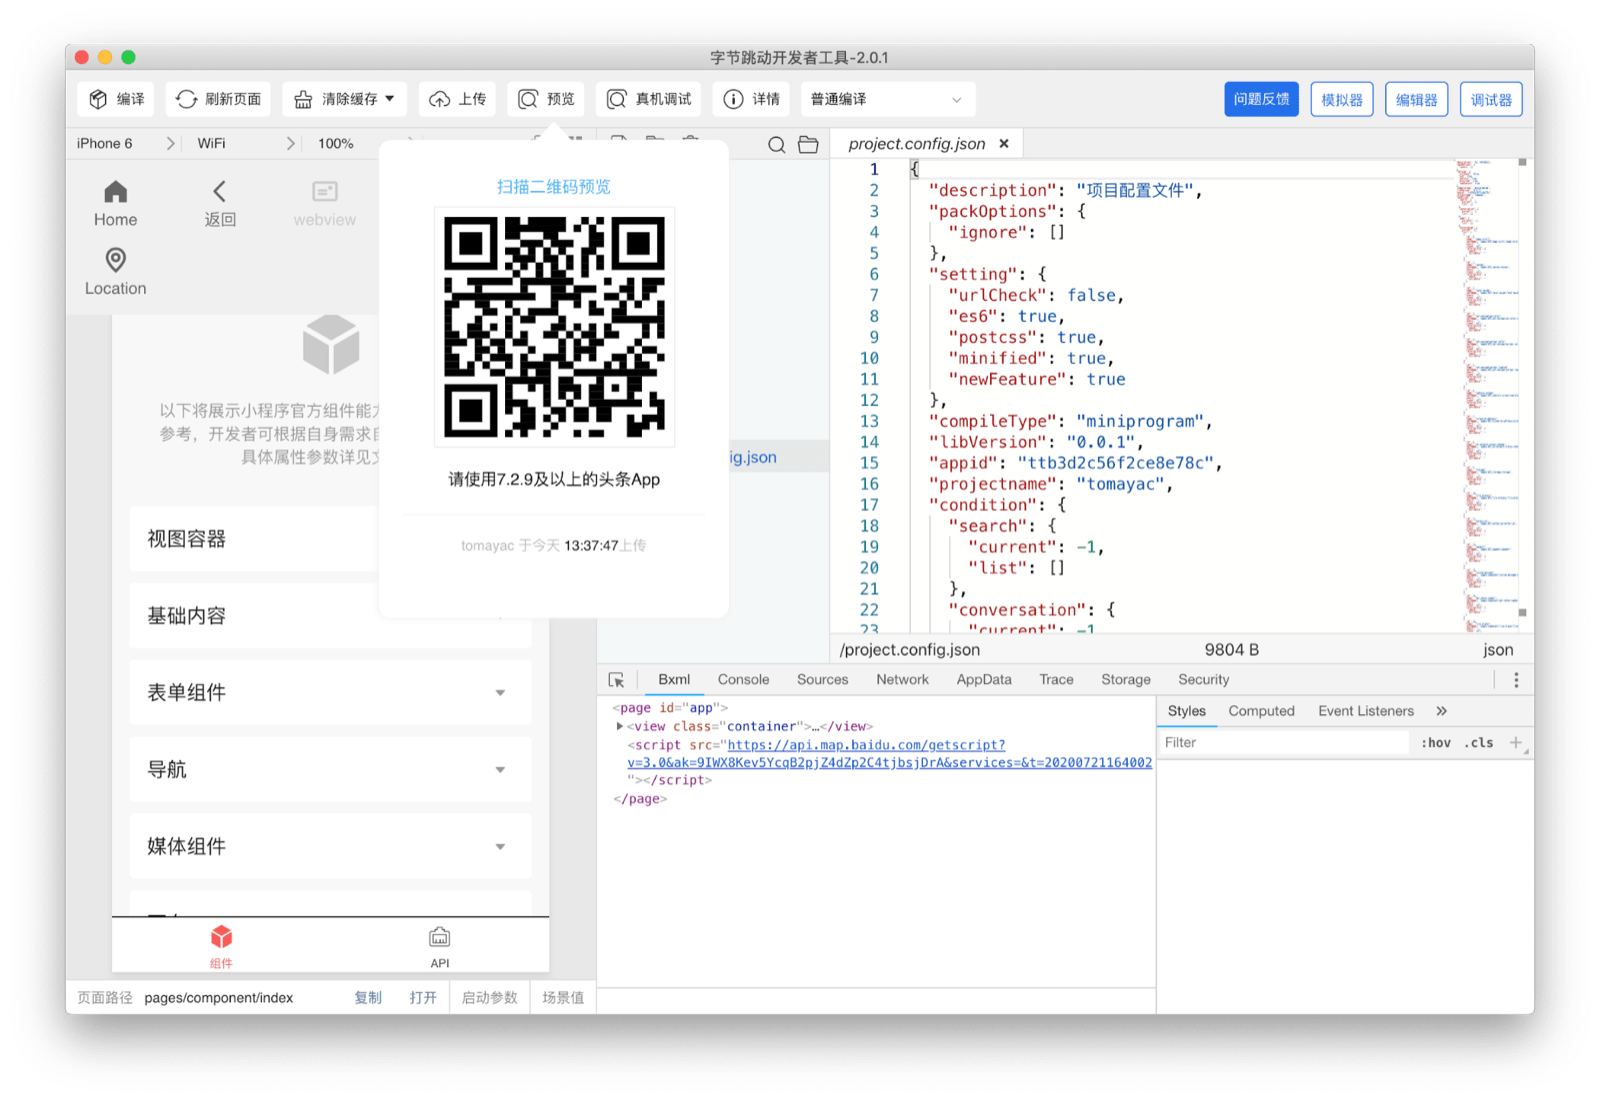 ByteDance DevTools showing a QR code that the user can scan with the Douyin app to see the current mini app on their device.